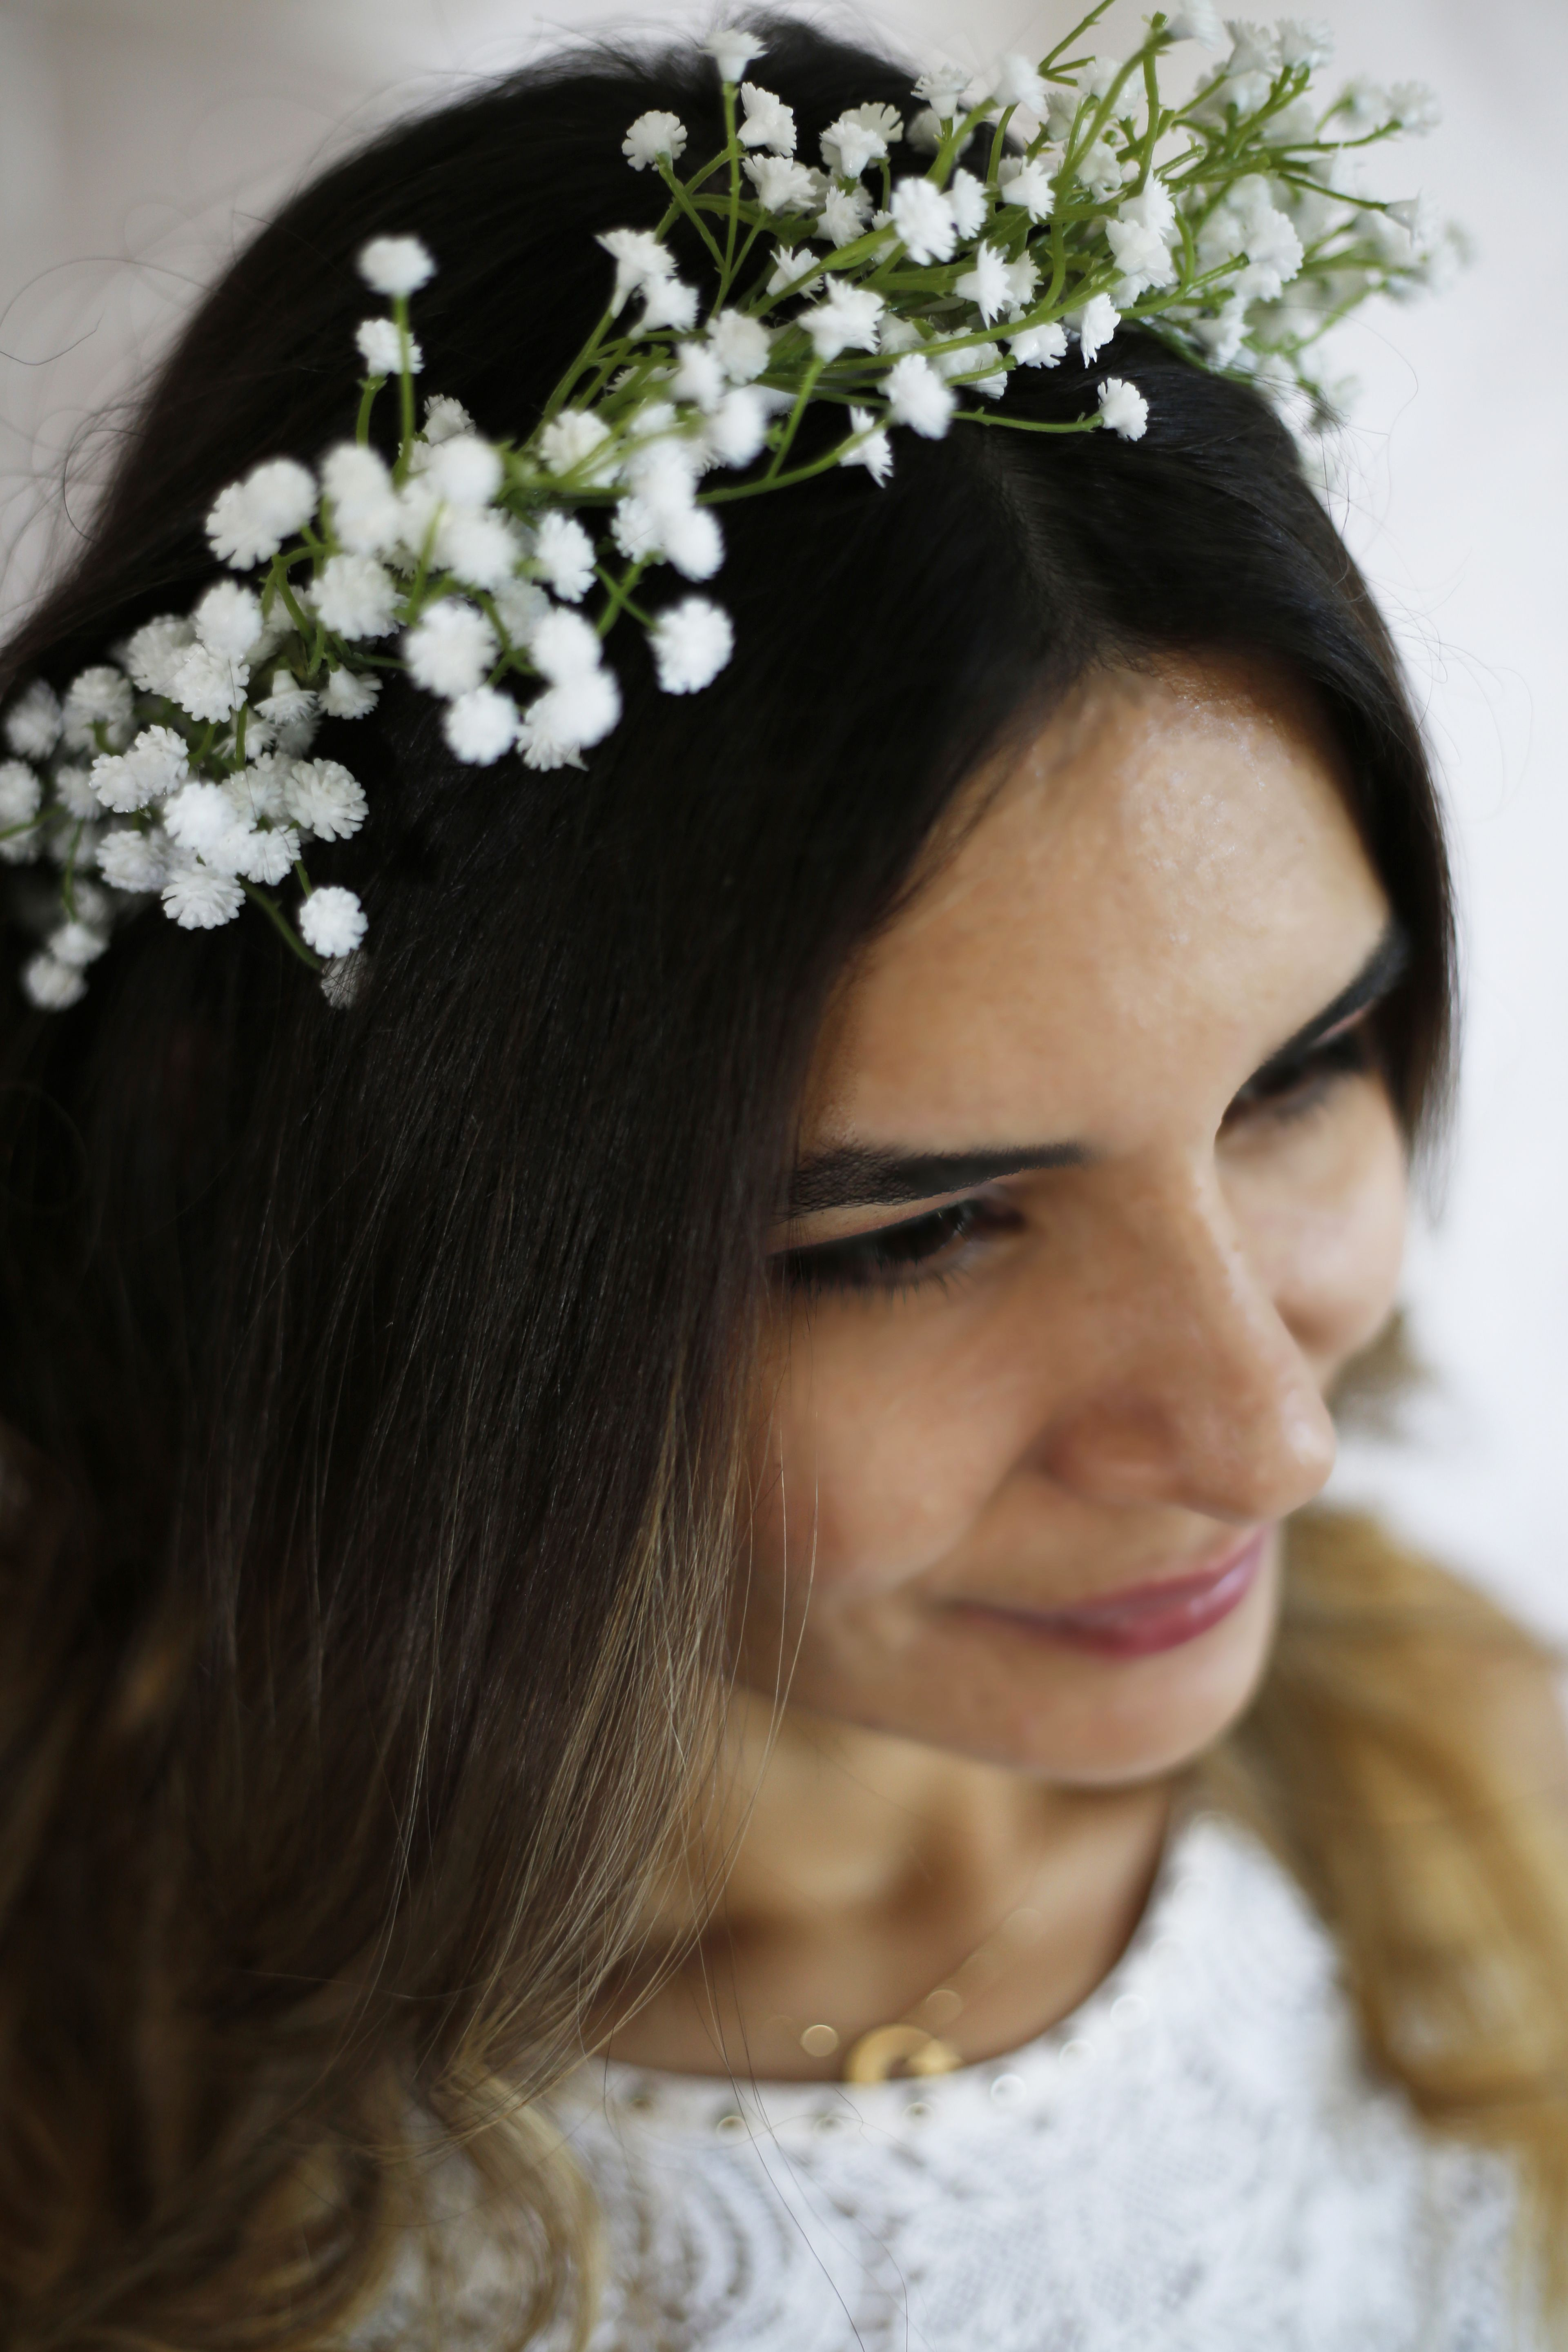 A Floral Half Crown Composed Of Eucalyptus Babys Breath And Blush Ranunculus Flowers Also Available I Flower Crown Wedding Bridal Flower Crown Floral Crown